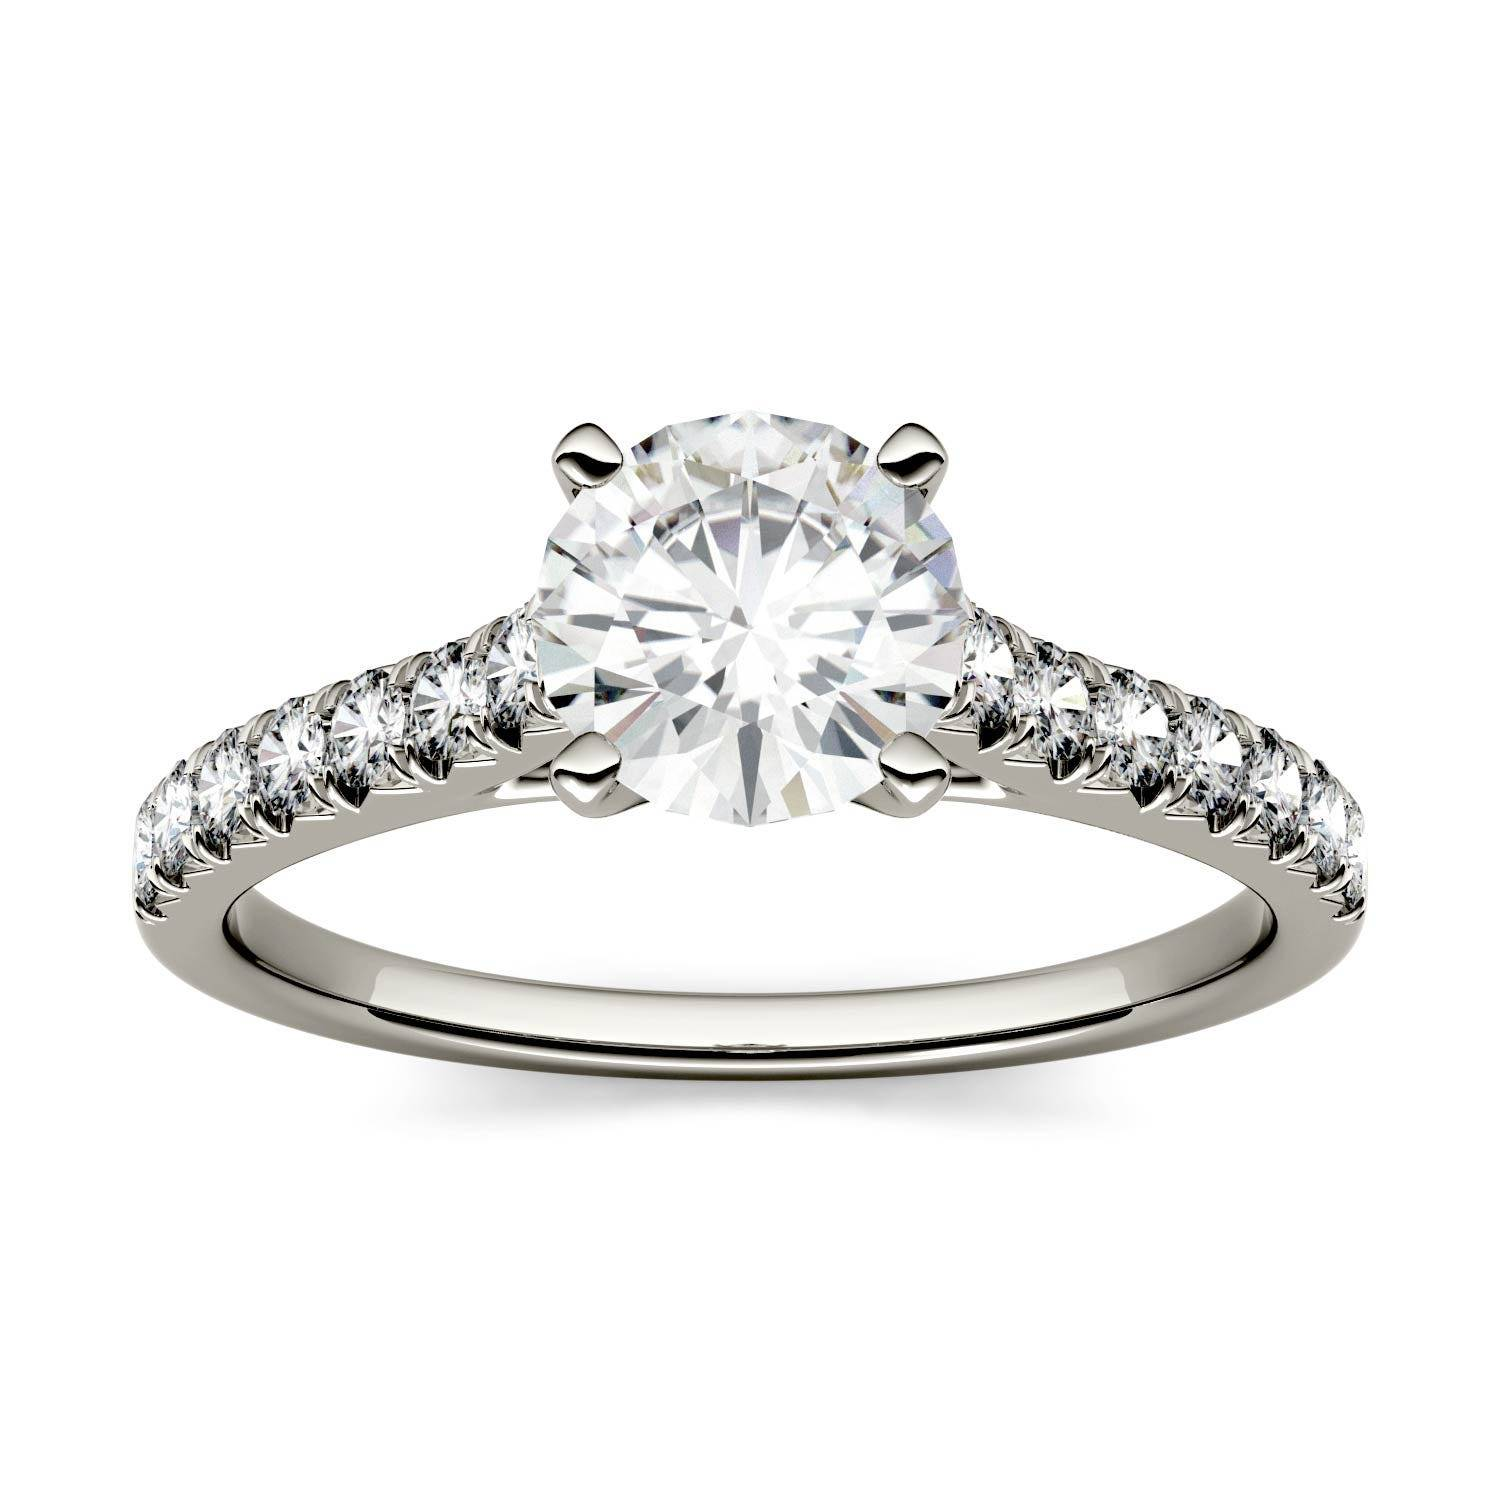 Charles & Colvard Solitaire with Side Accents Engagement Ring in 14K White Gold, Size: 6, 1.35CTW Round Forever One - Colorless Moissanite Charles & Colvard  - White Gold - Size: 6